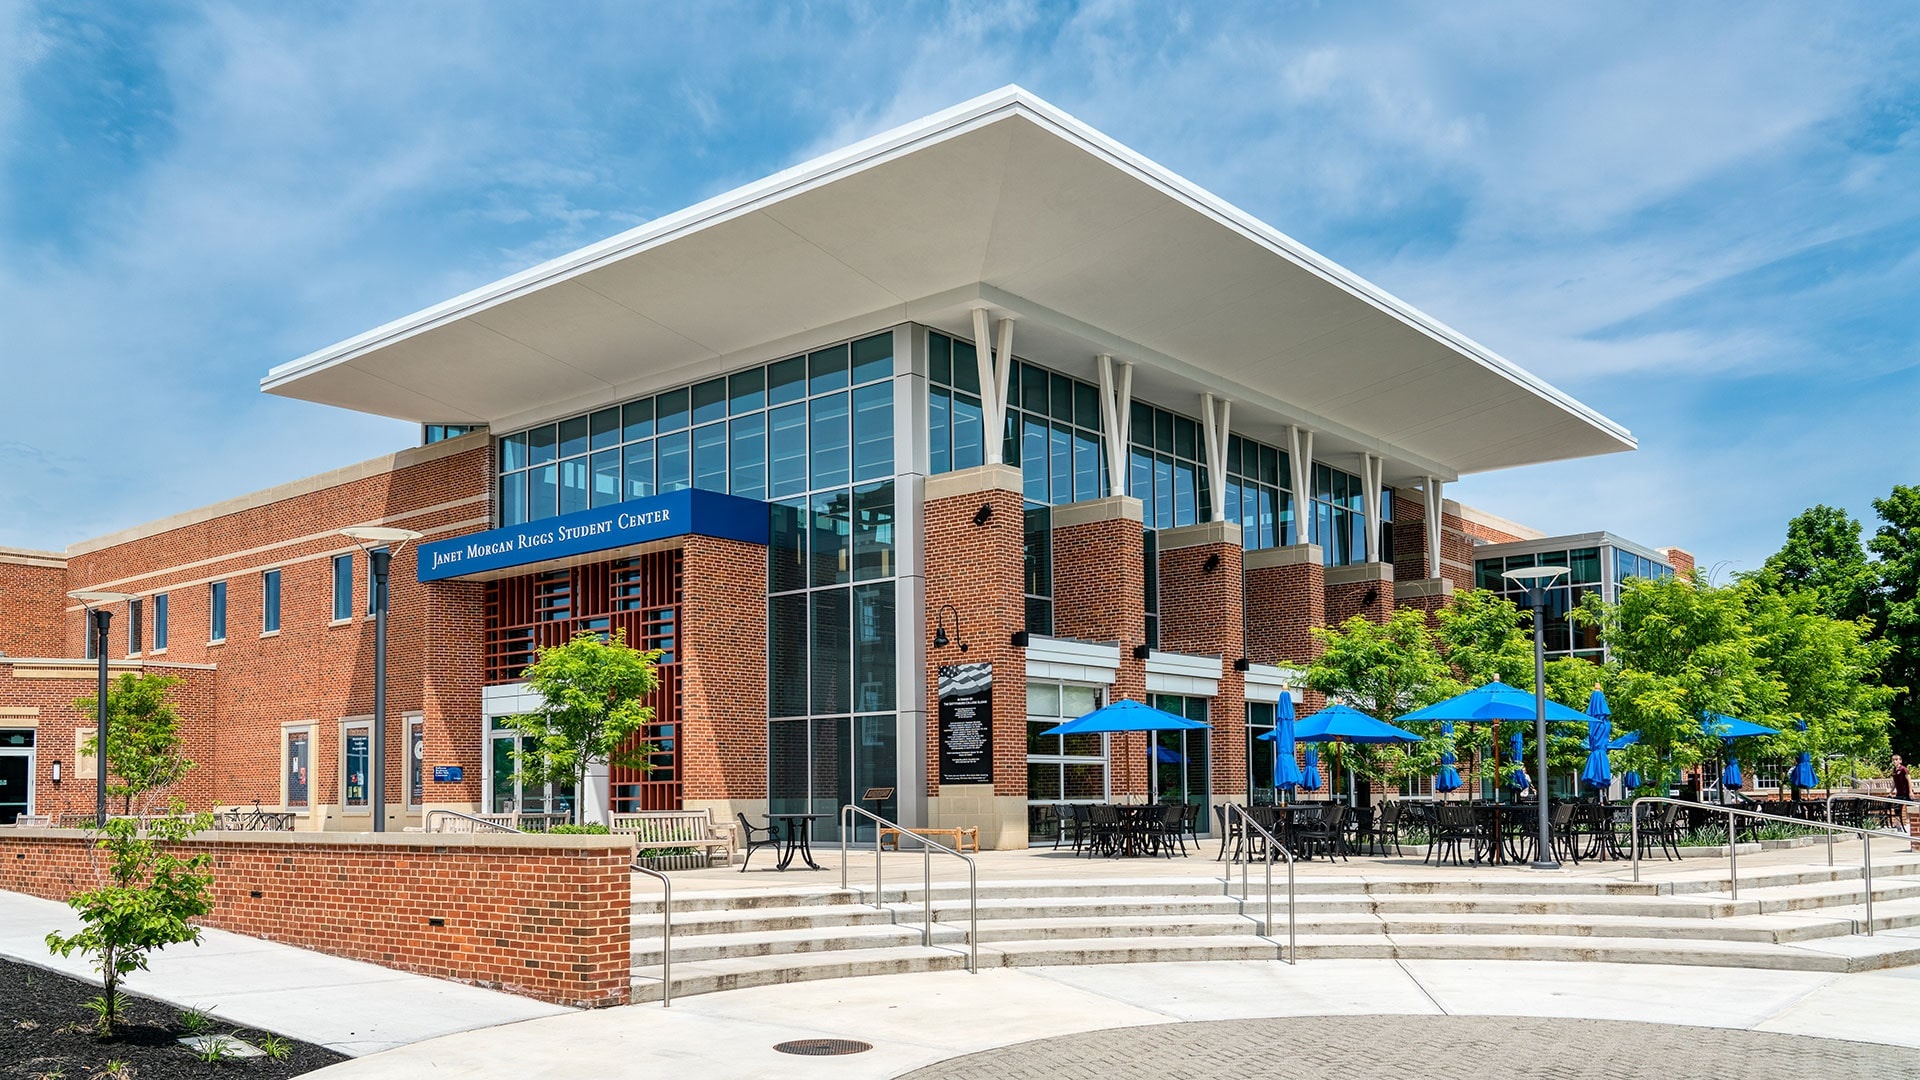 Janet Morgan Riggs Student Center at Gettysburg College